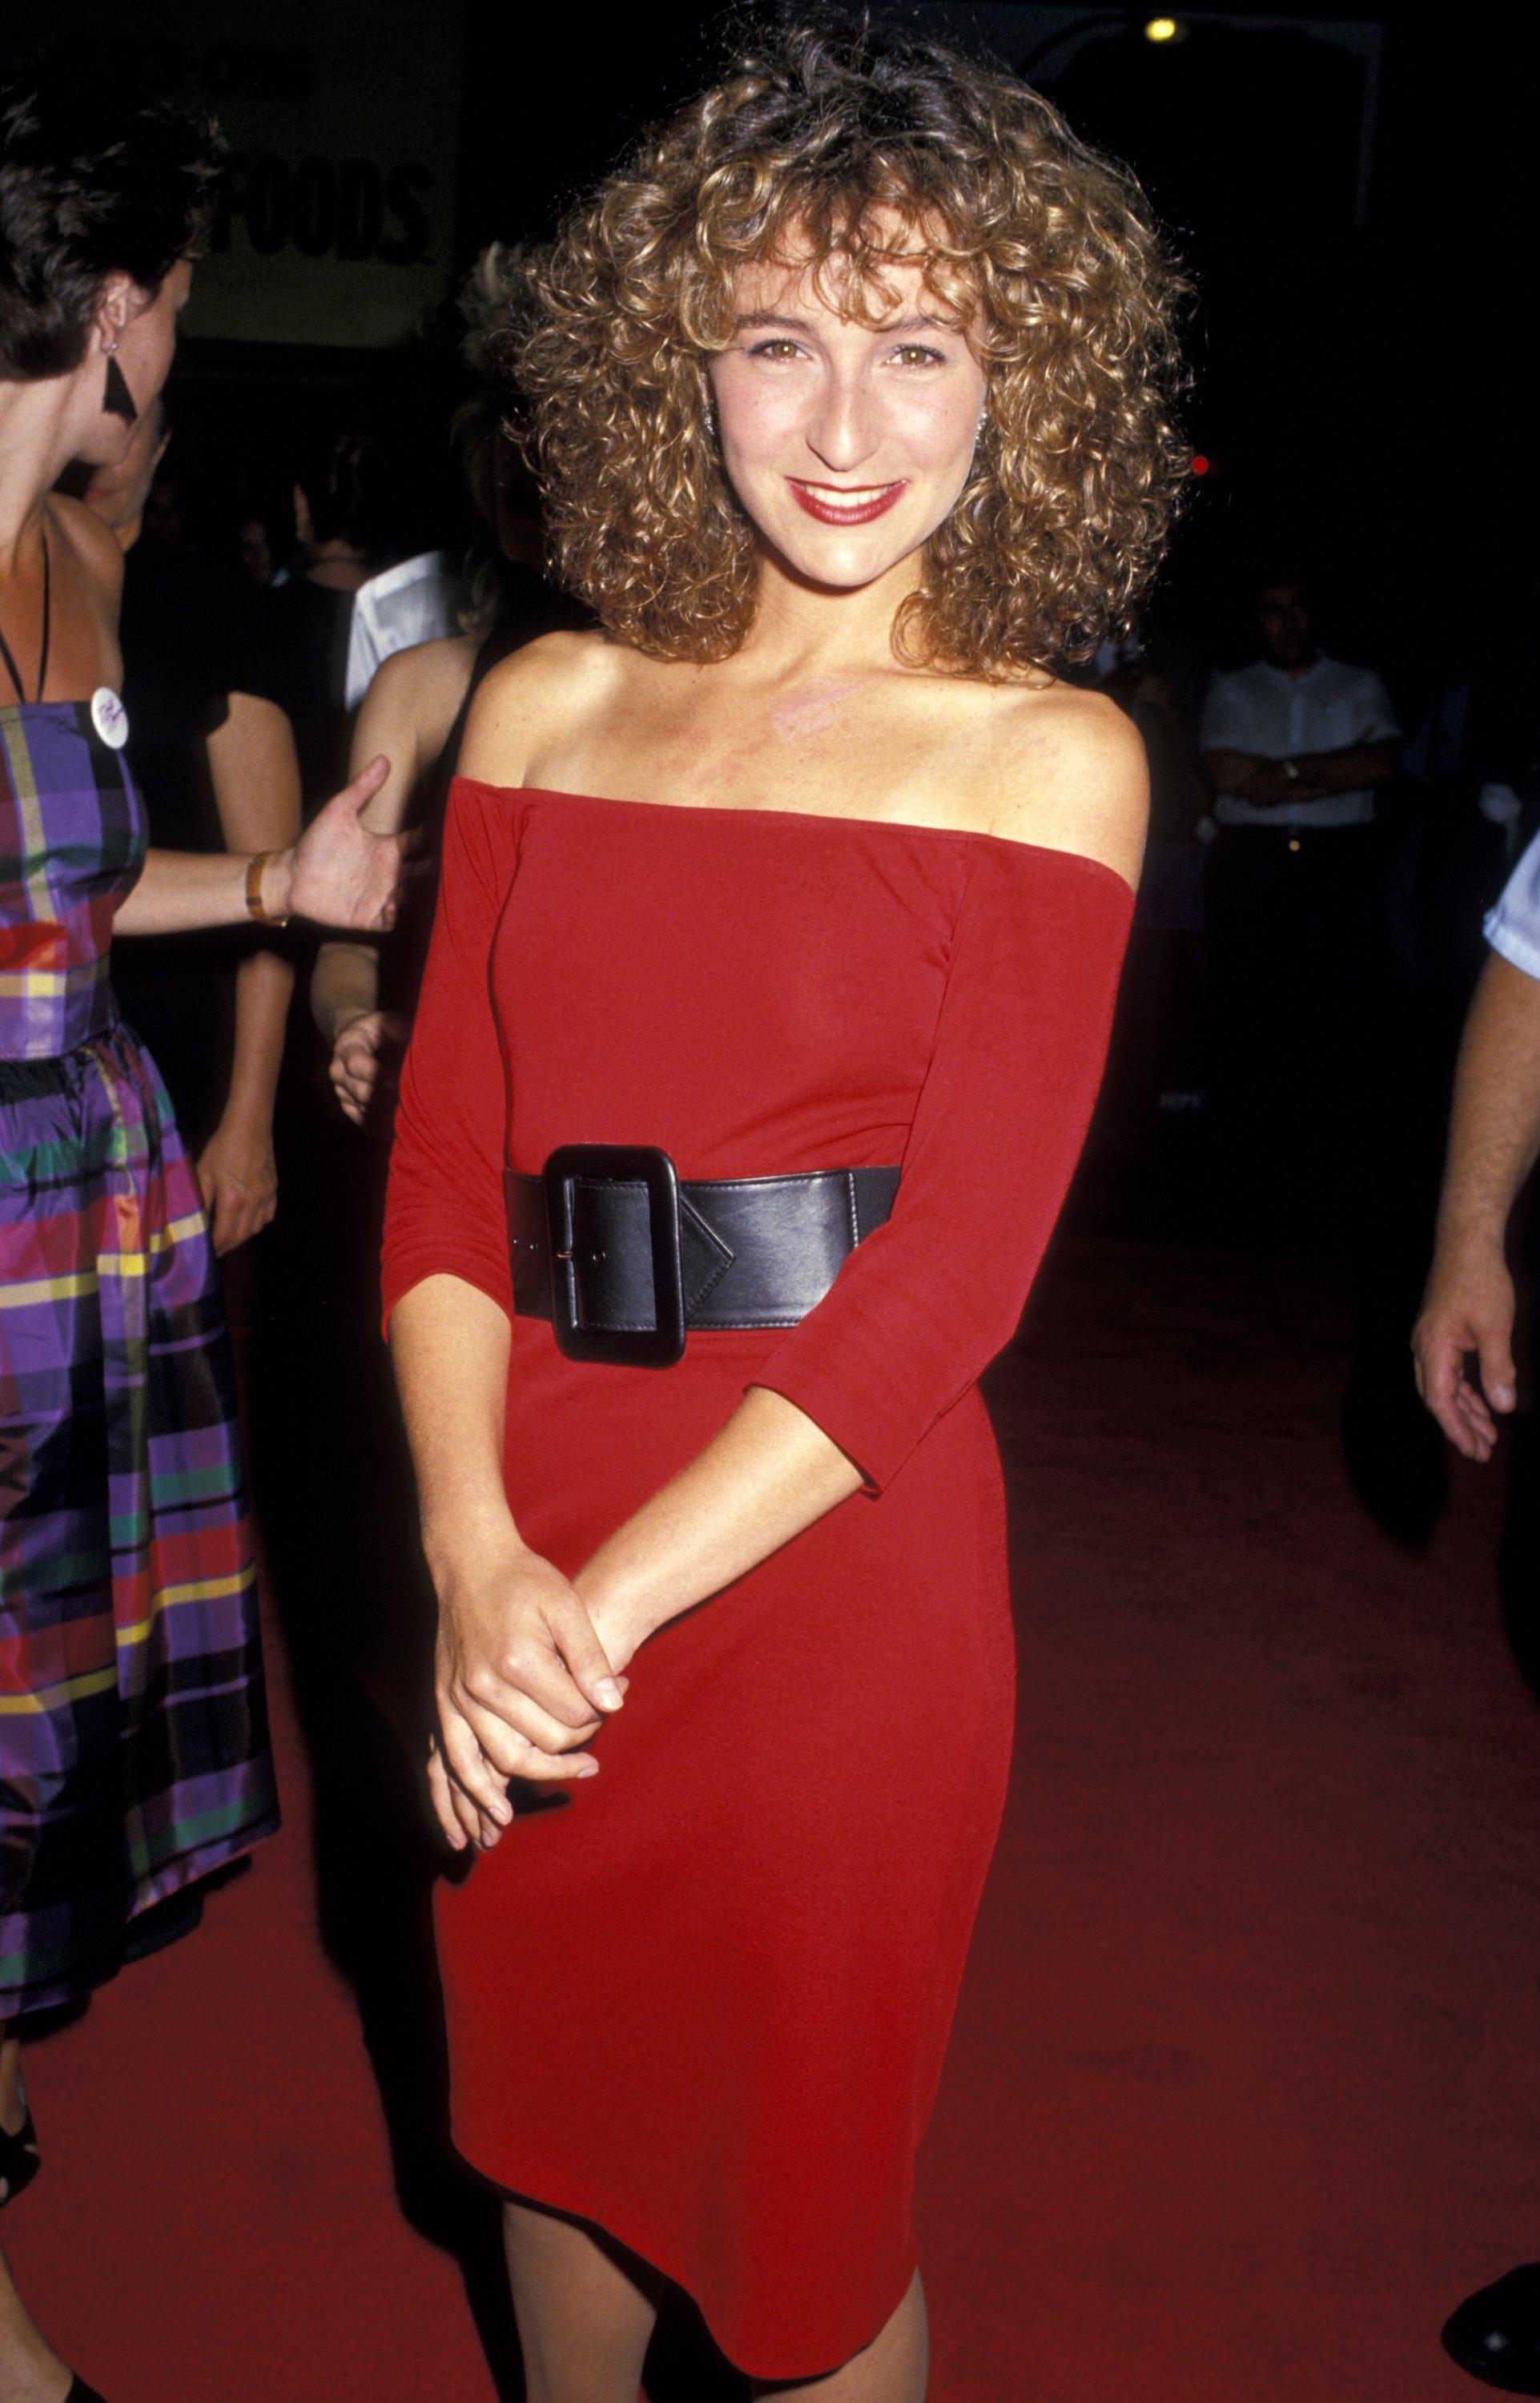 Jennifer Grey at the Gemini Theater in New York City / Photo:Getty Images